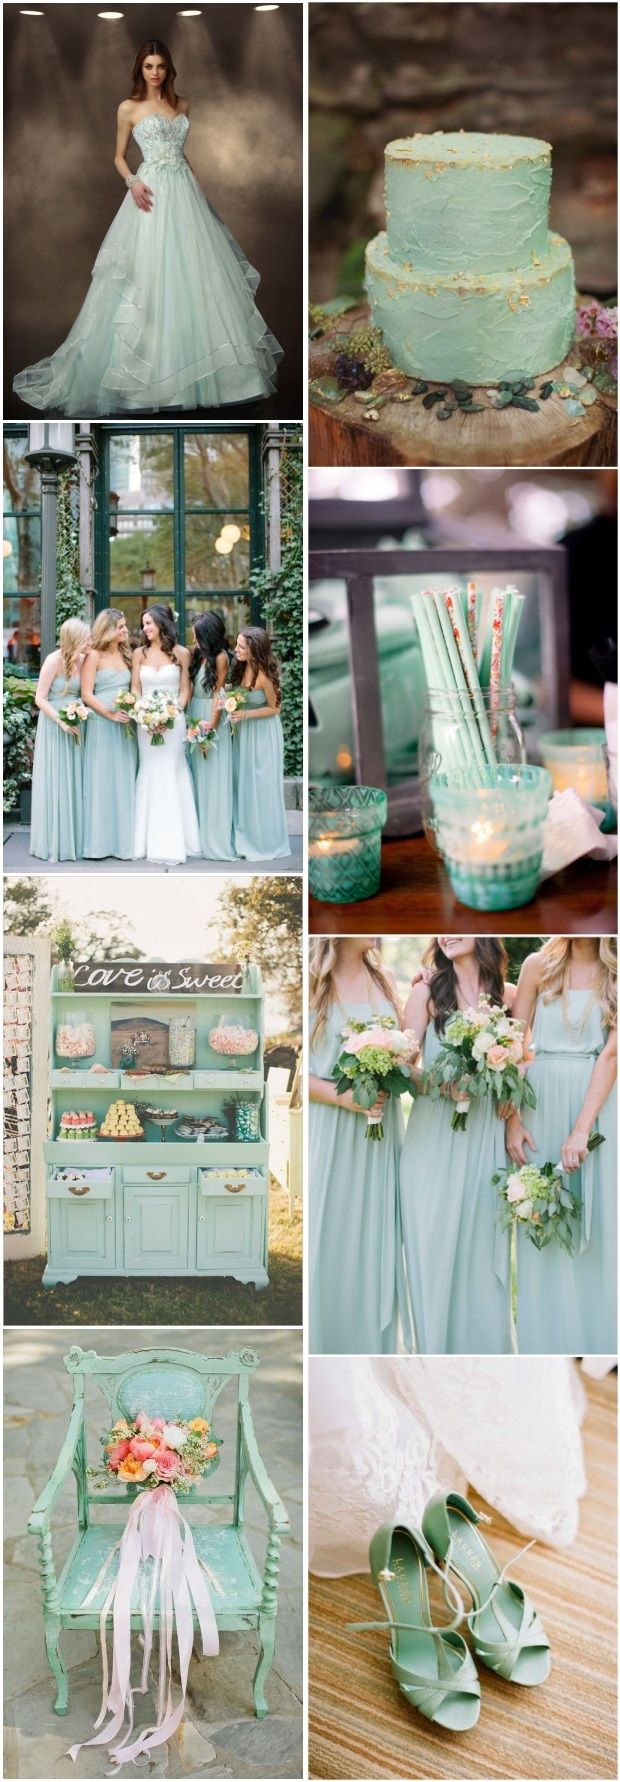 303 best images about aqua / turquoise / mint on pinterest | mint